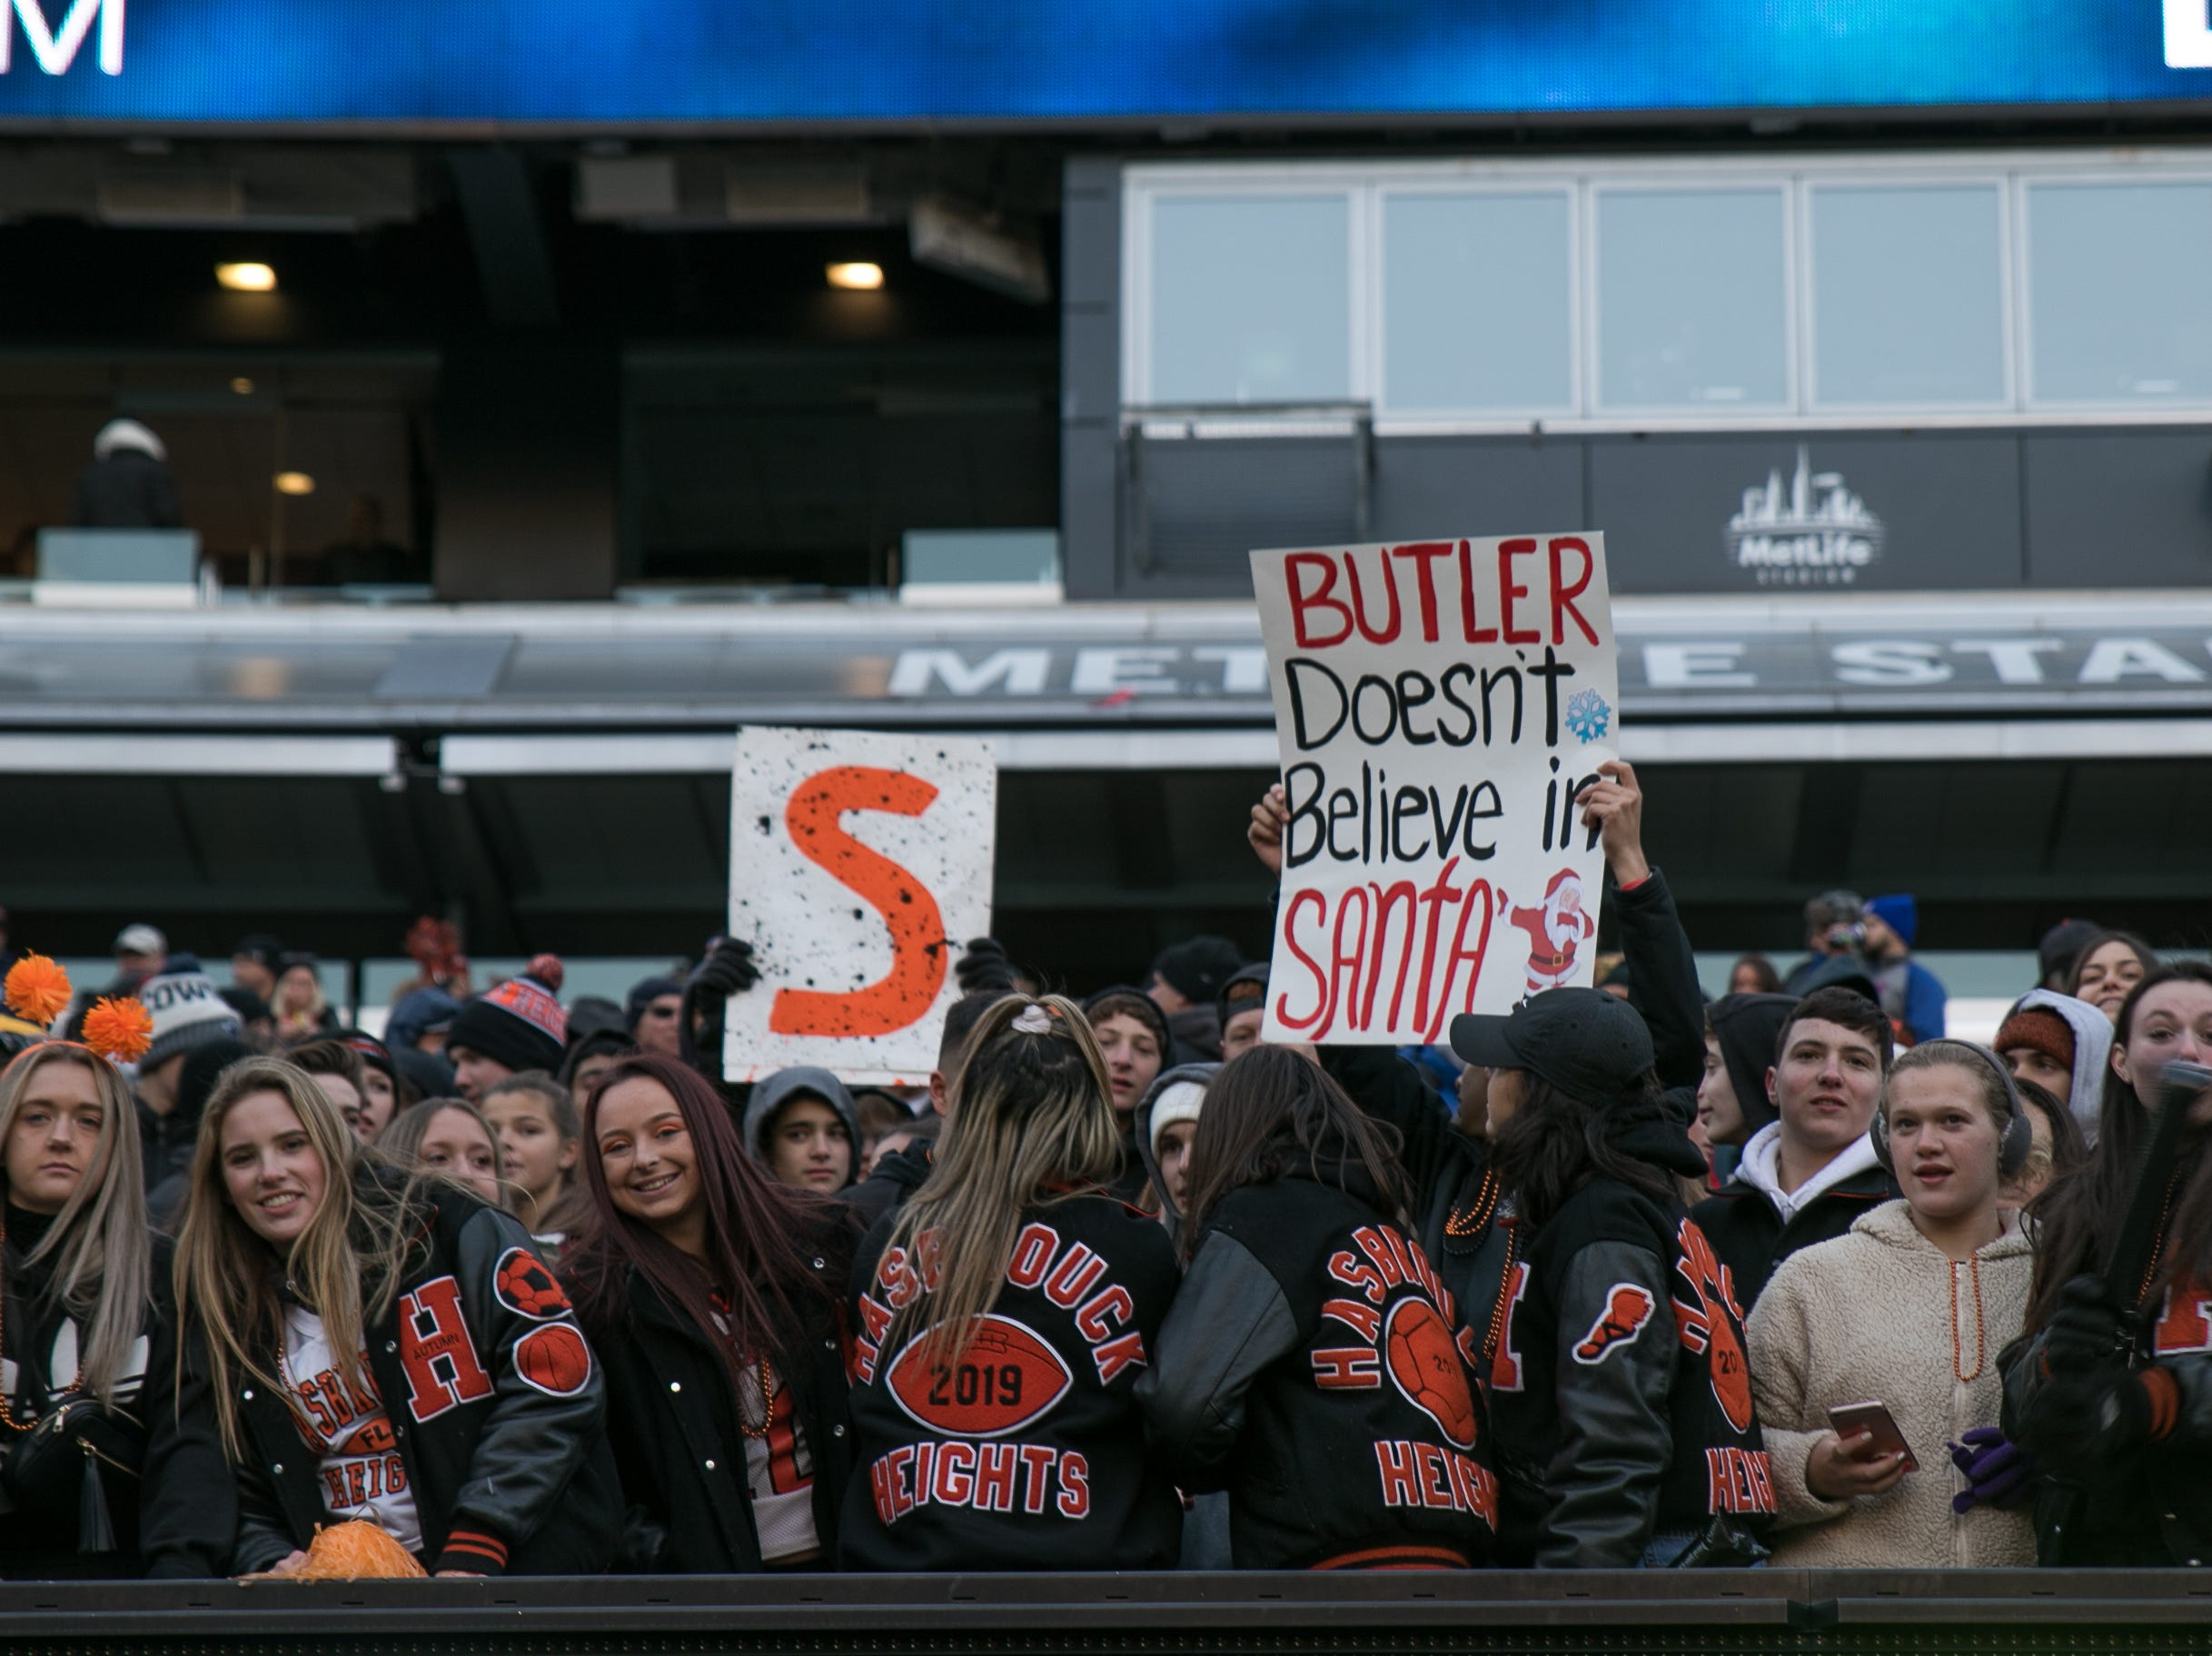 The scene at the Butler High School versus Hasbrouck Heights Group 1 Bowl Game at MetLife Stadium. The Aviators beat Butler 41-7. 11/23/2018